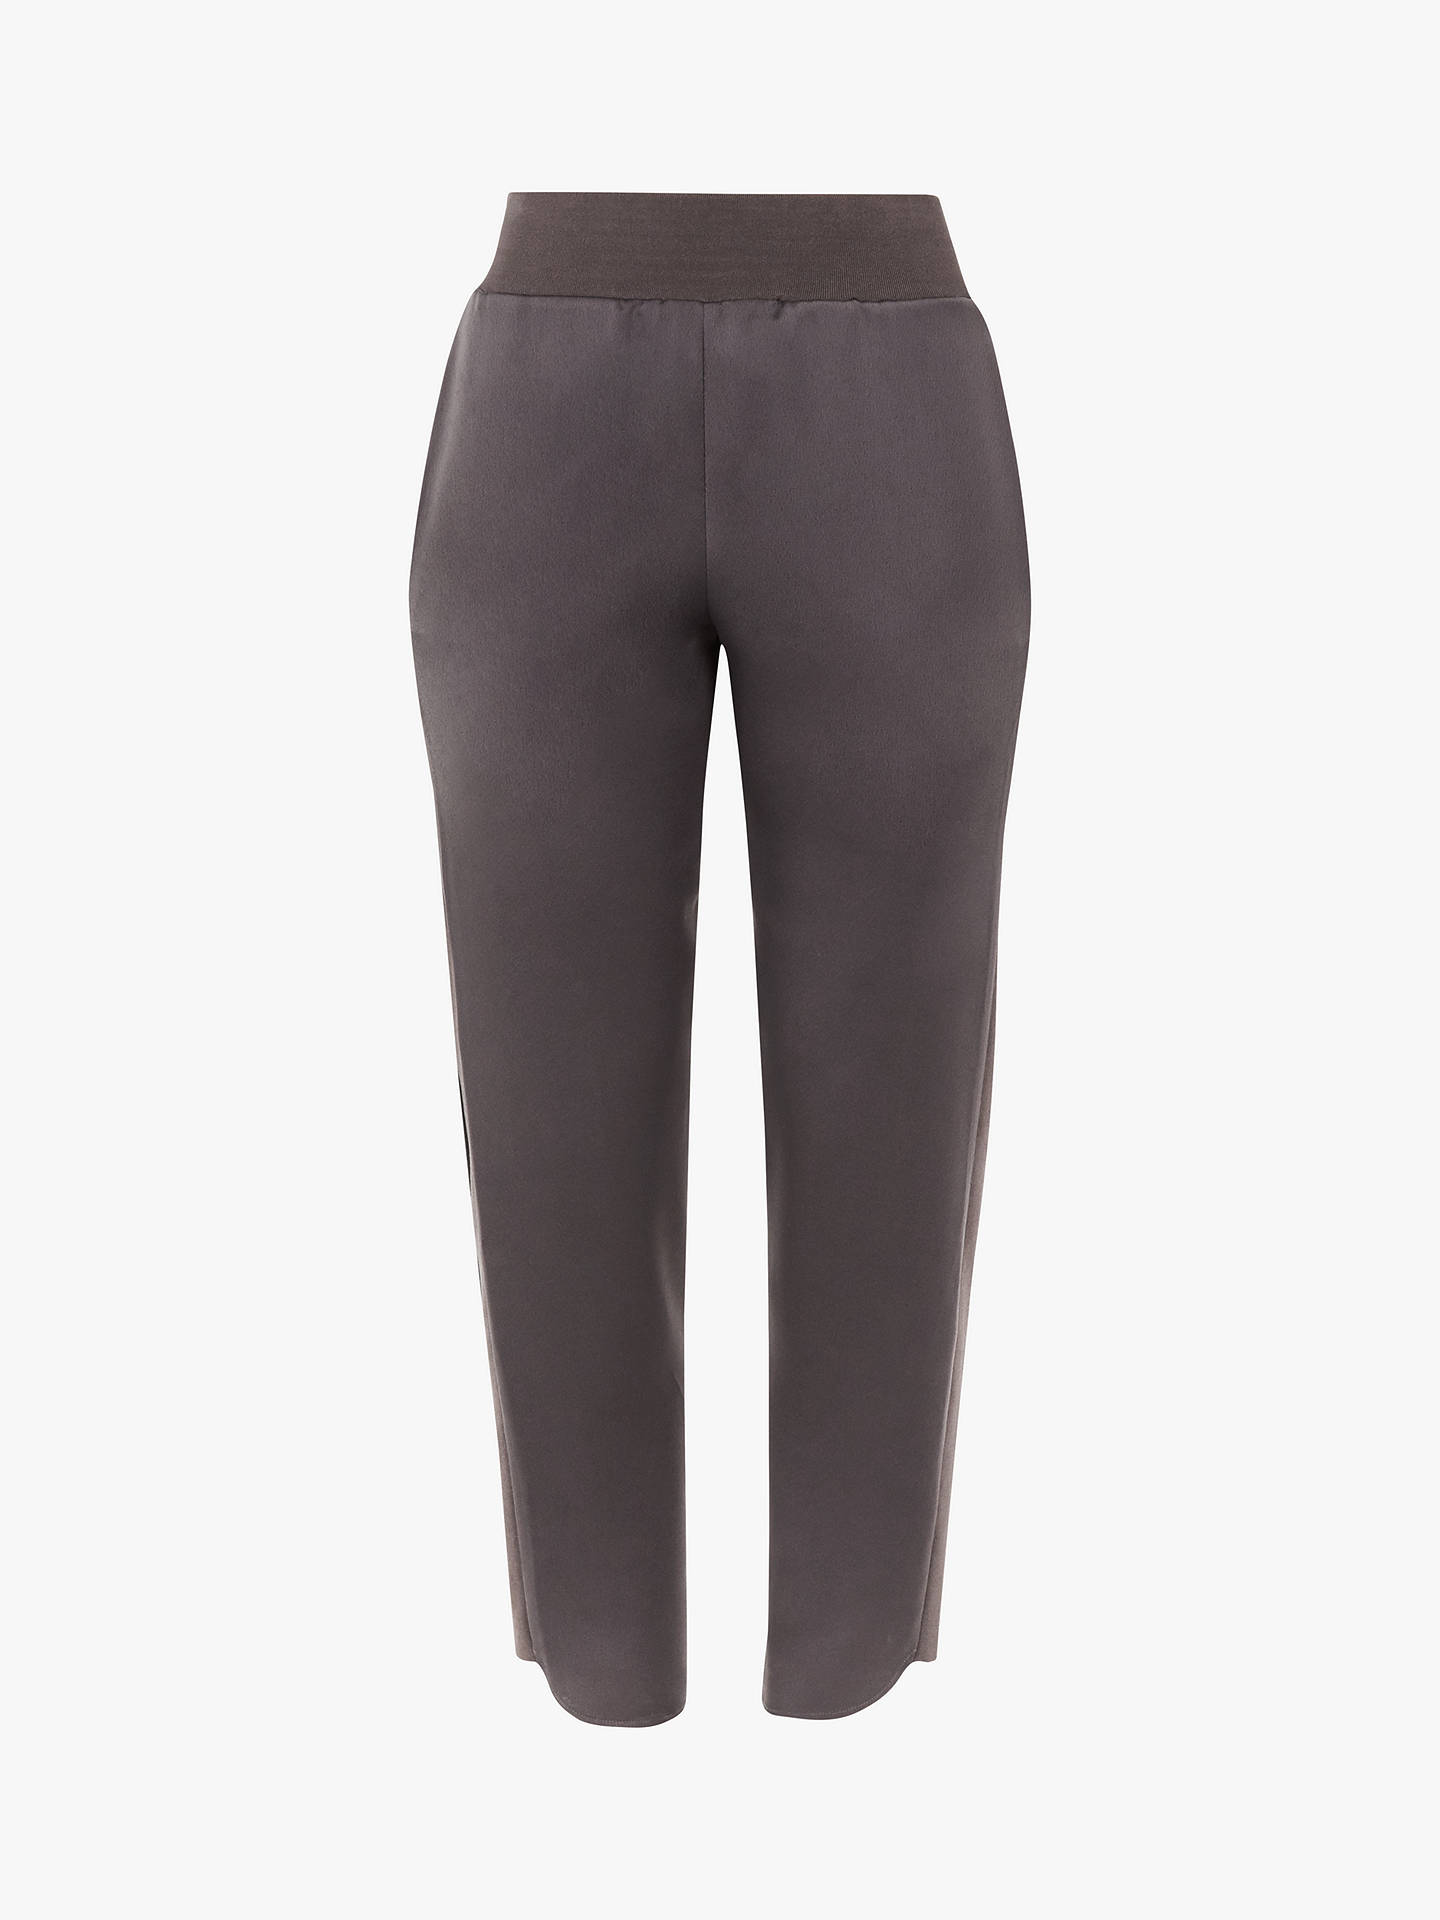 BuyTed Baker Madiy Knit Detail Trousers, Grey Charcoal, L Online at johnlewis.com